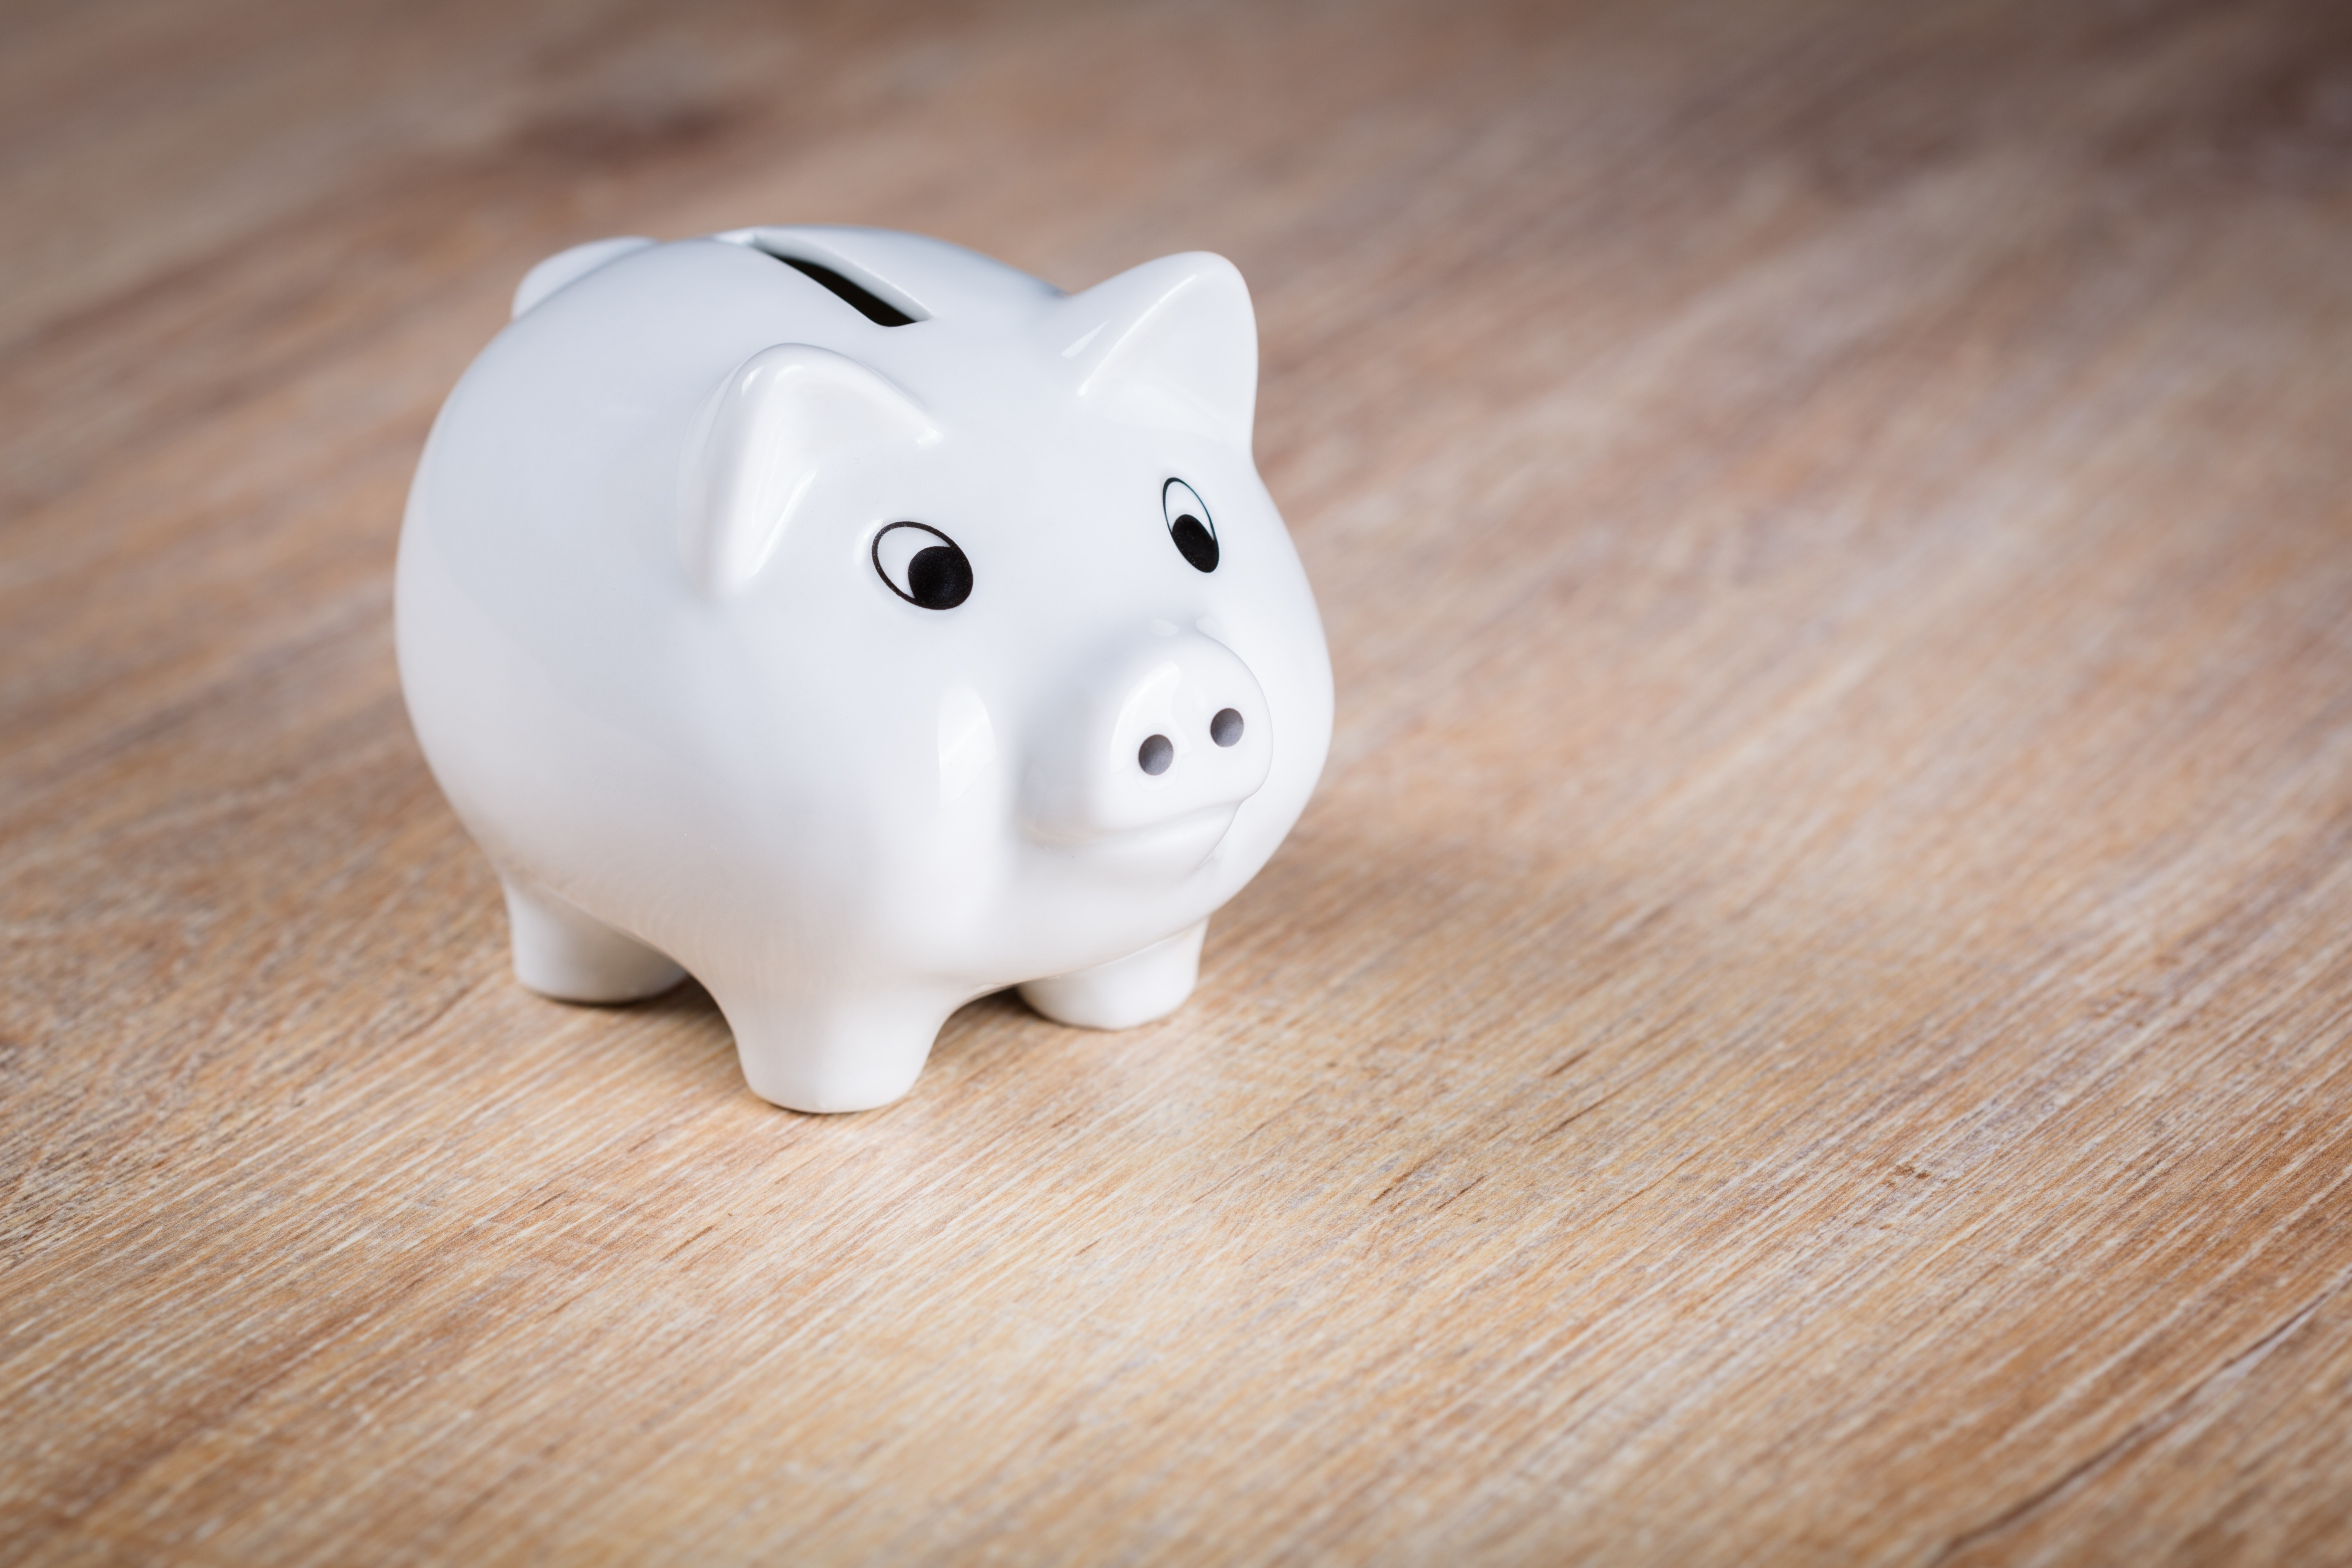 Should I Use Kiwisaver Or Qualifying Superannuation Funds To Secure A Mortgage?